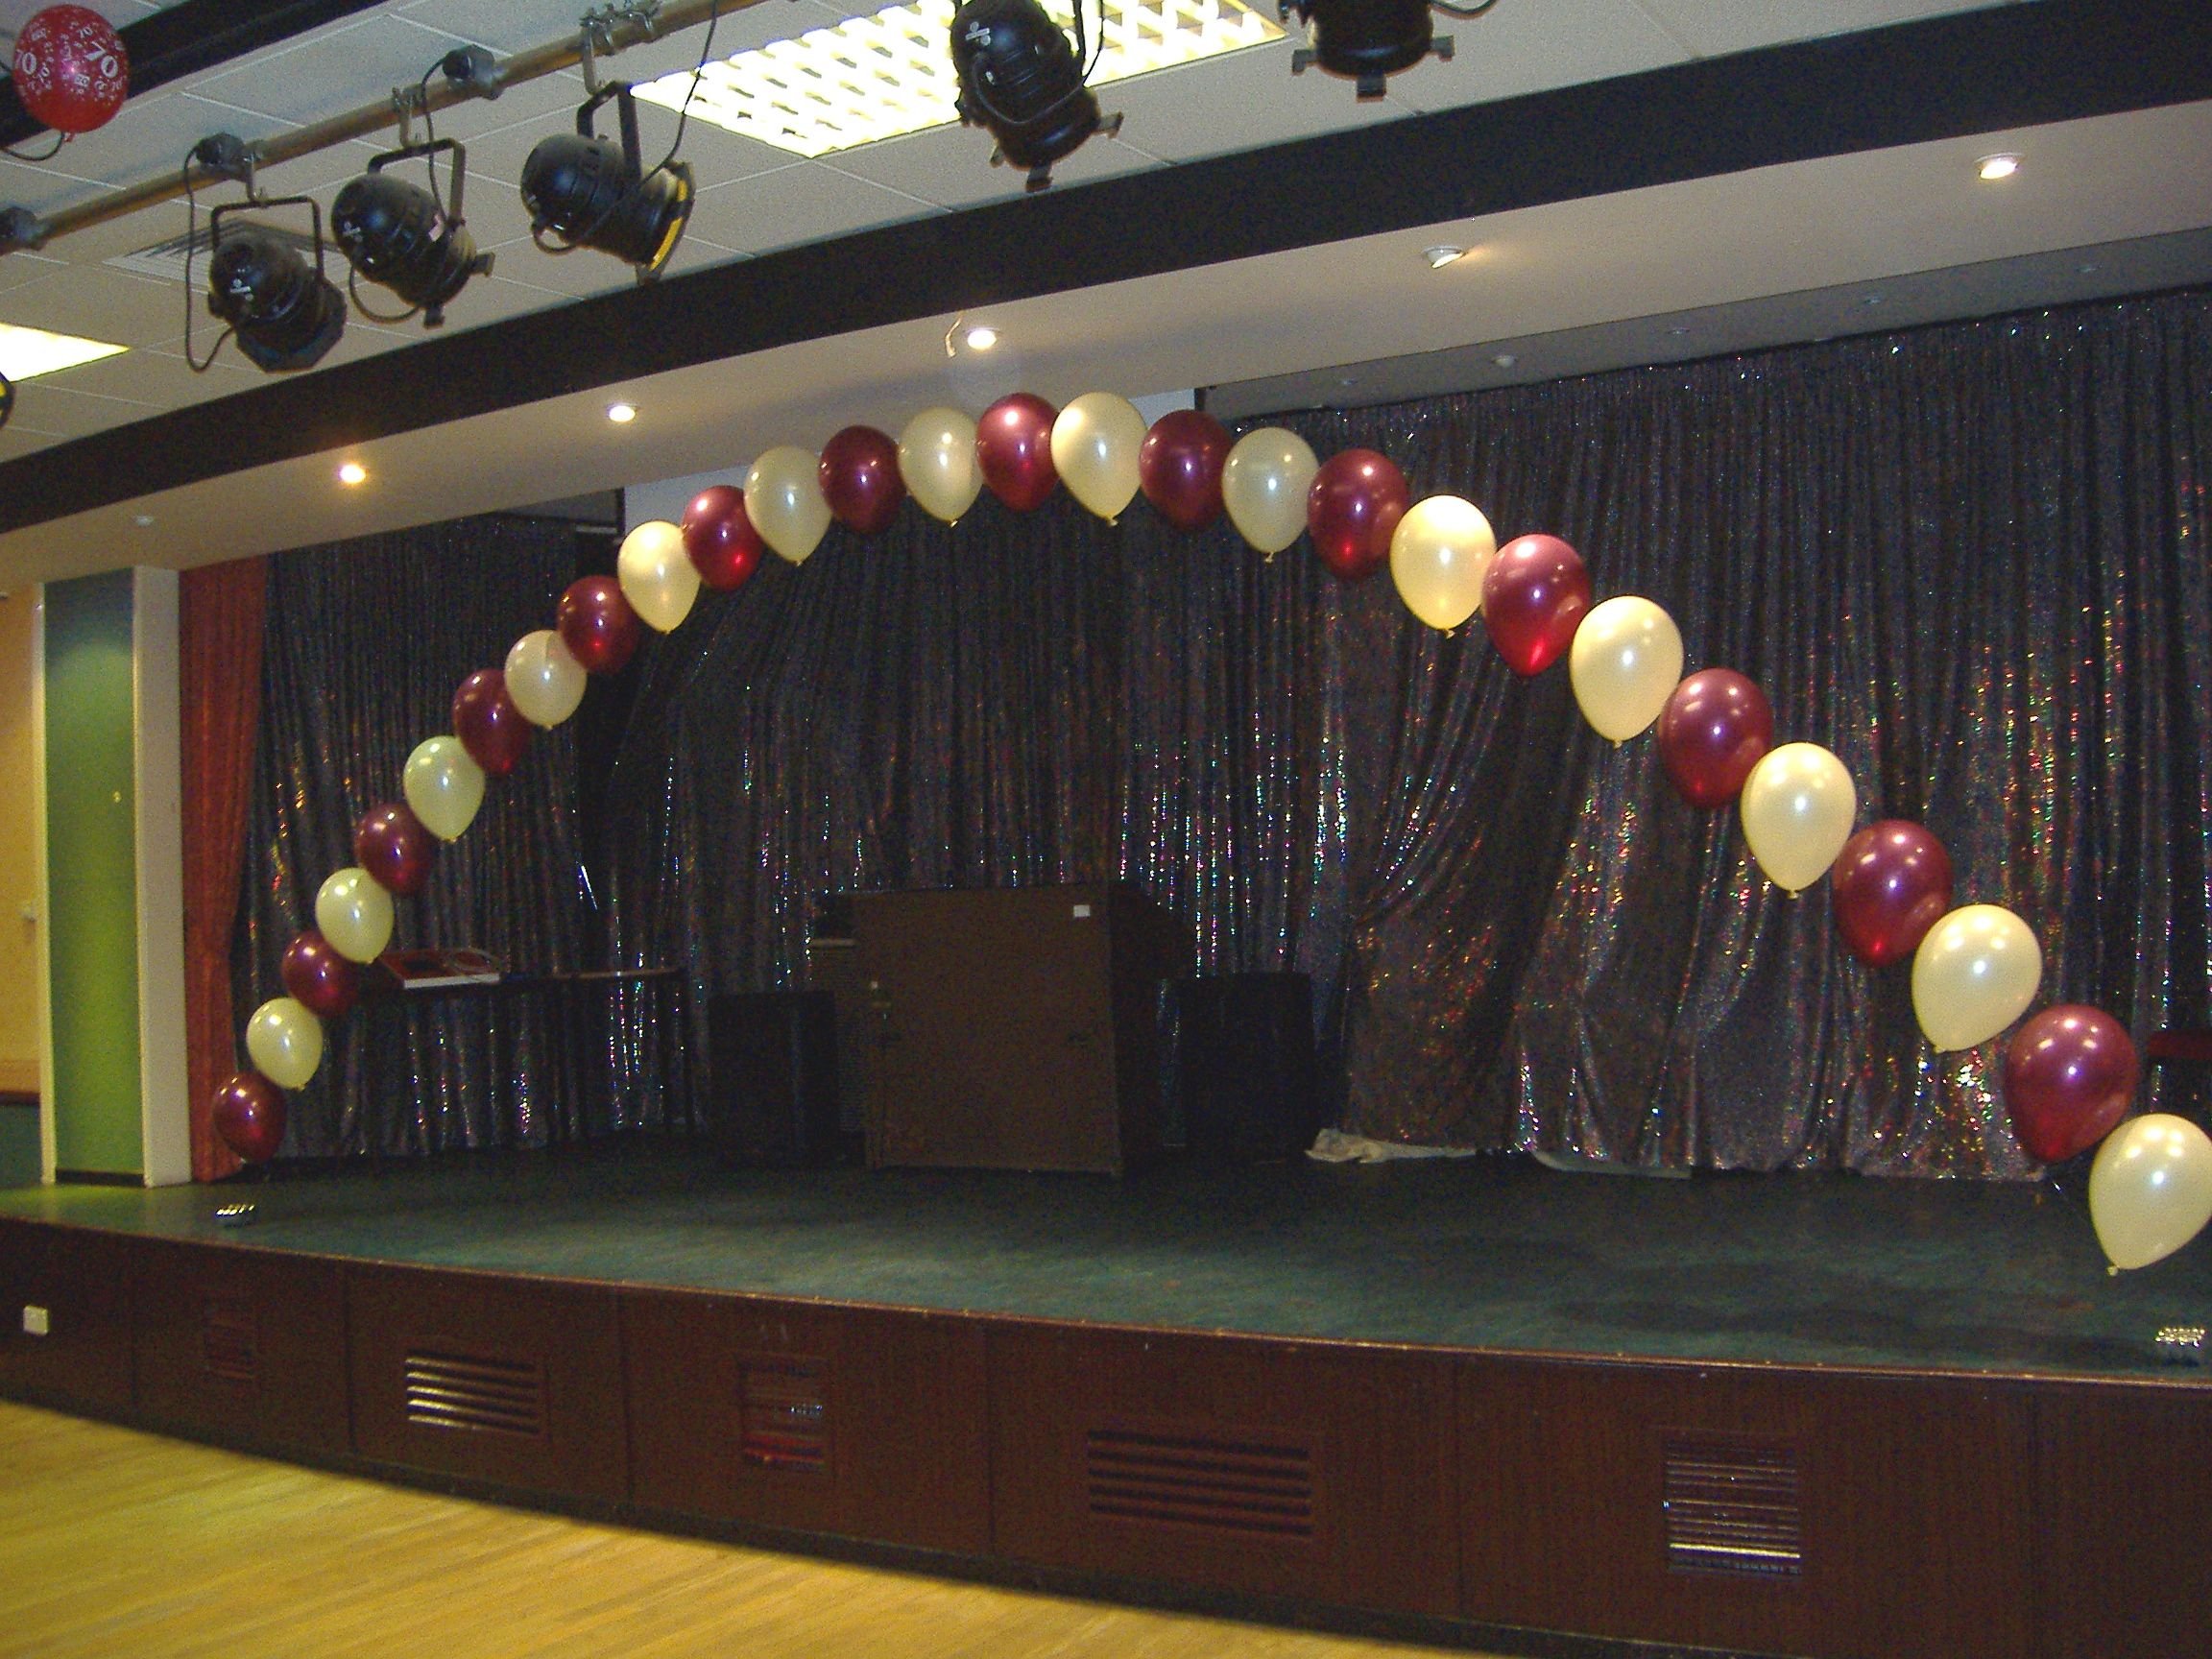 My Finishing Touch Balloon Artist And Event Decorations